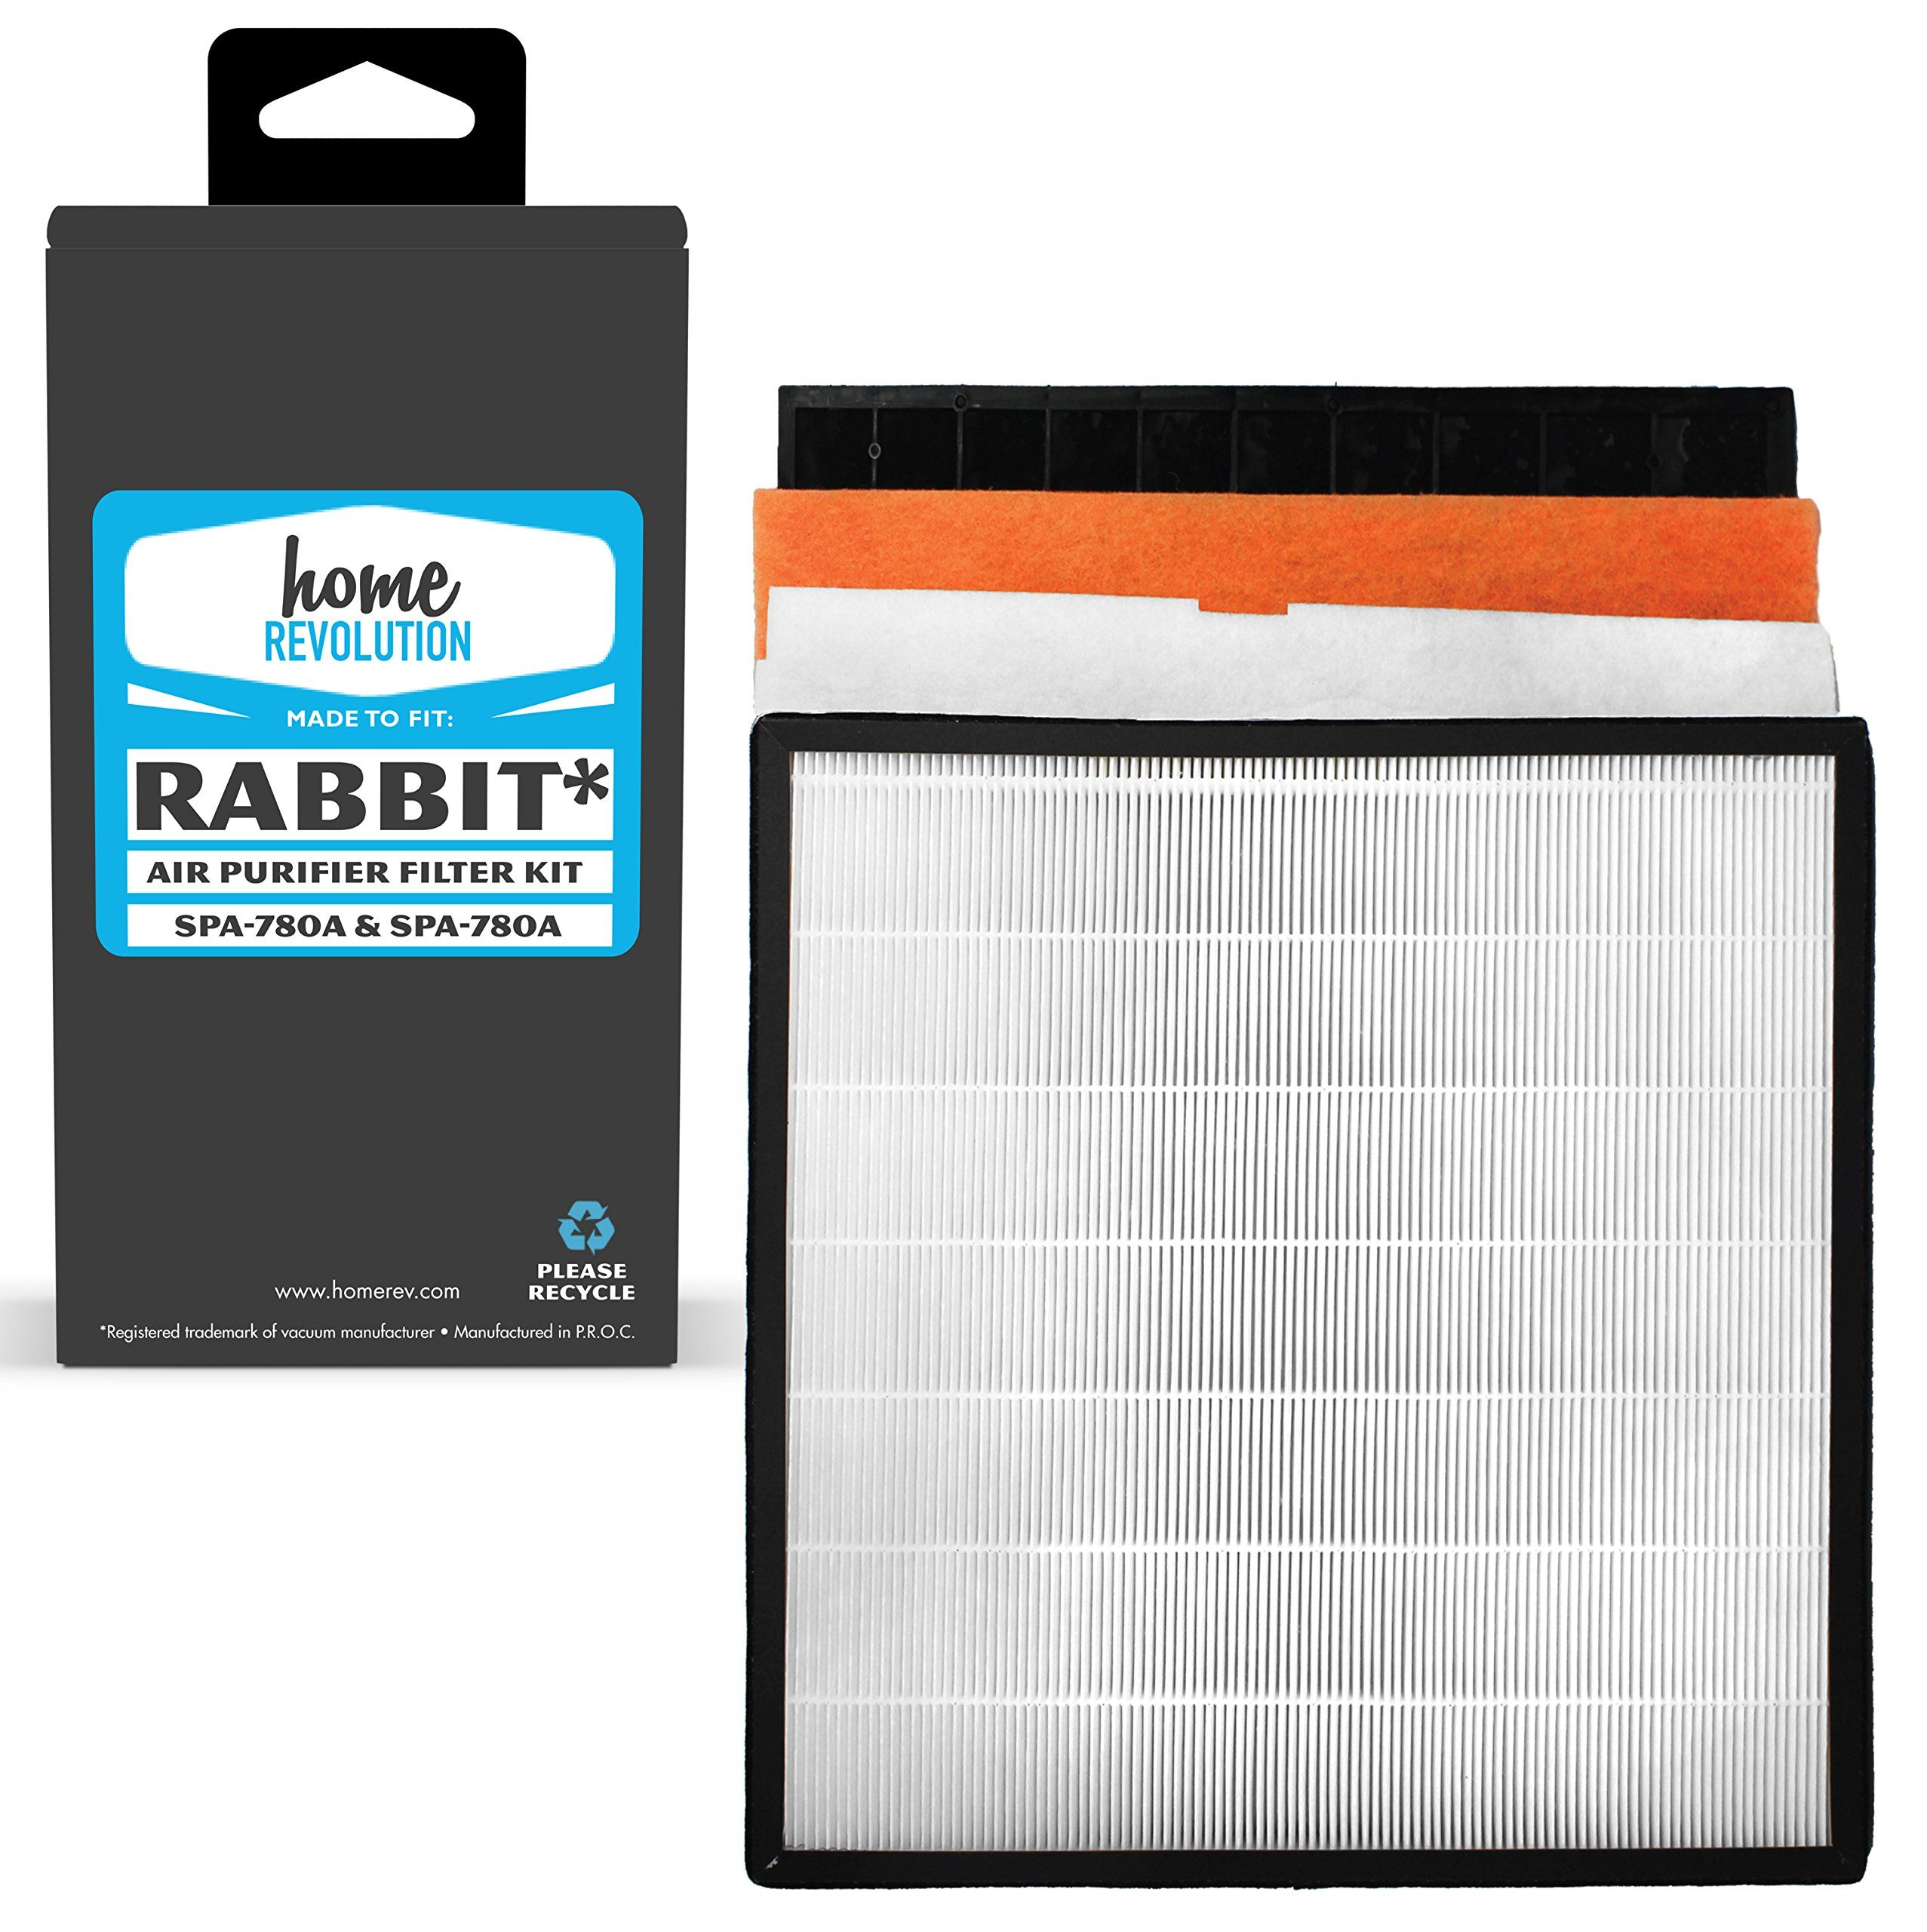 Home Revolution 1 Replacement Filter Kit Fits Rabbit Air